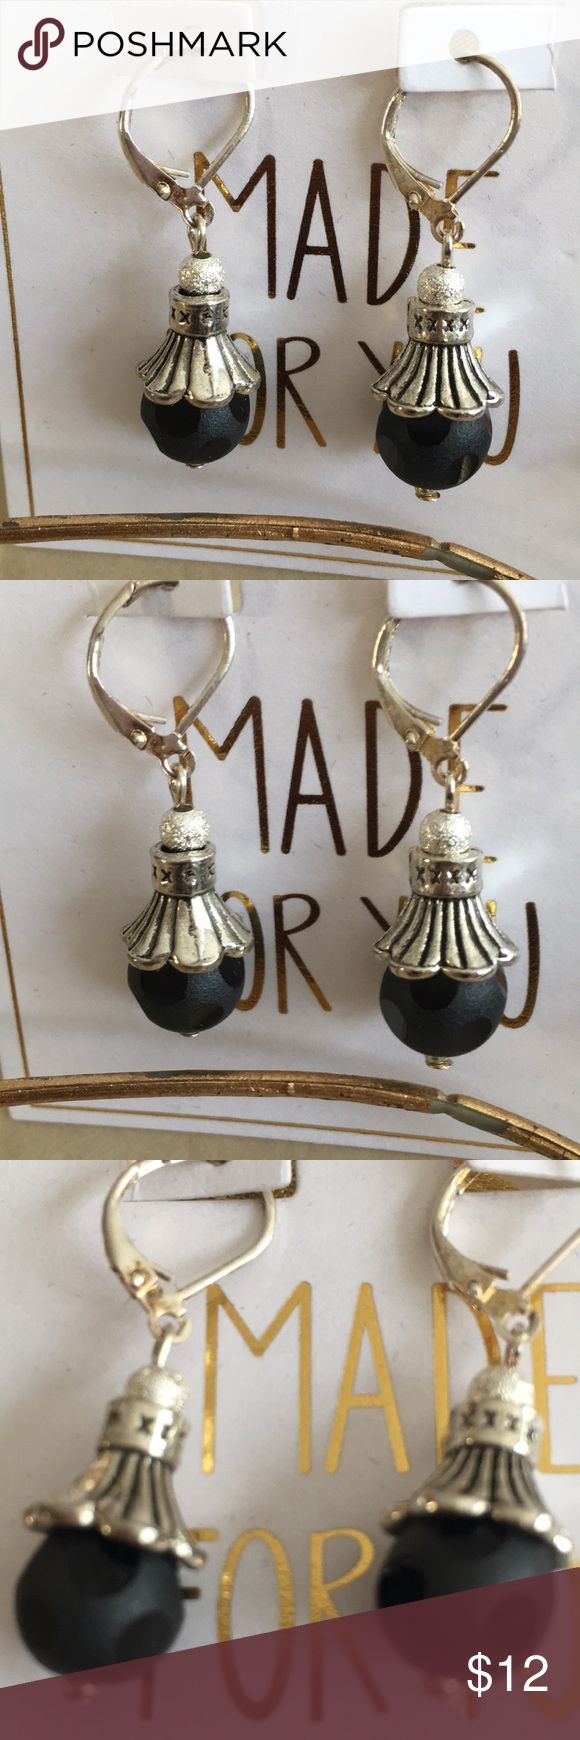 Vintage Black Polka Dot Sterling Pl Bali Earring Lever-back Bali sterling plated bead cap earring. Vintage polka dot glass bead. One of a kind hand designed by Lori🙃 My Beading Heart 2 ❤️ Jewelry Earrings